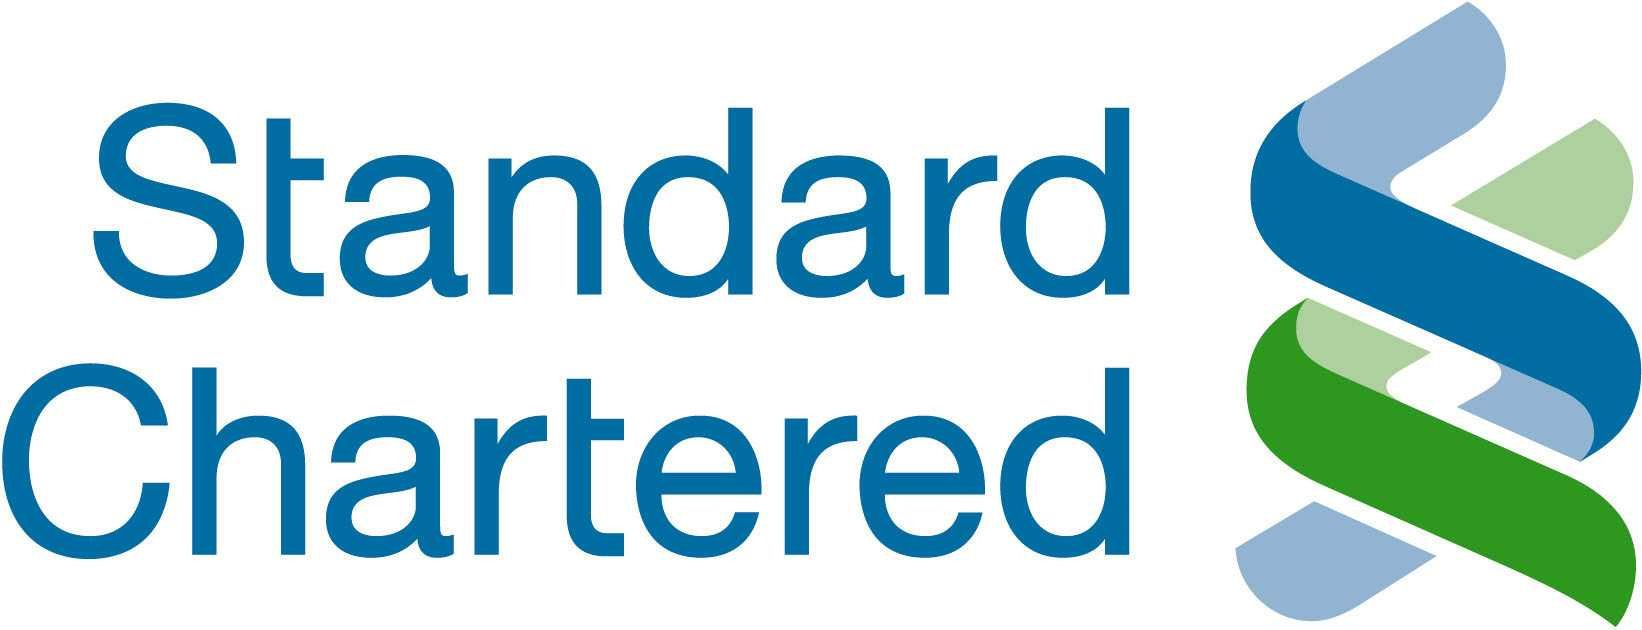 Standard Chartered Soccer Banks logo, Logos, Business